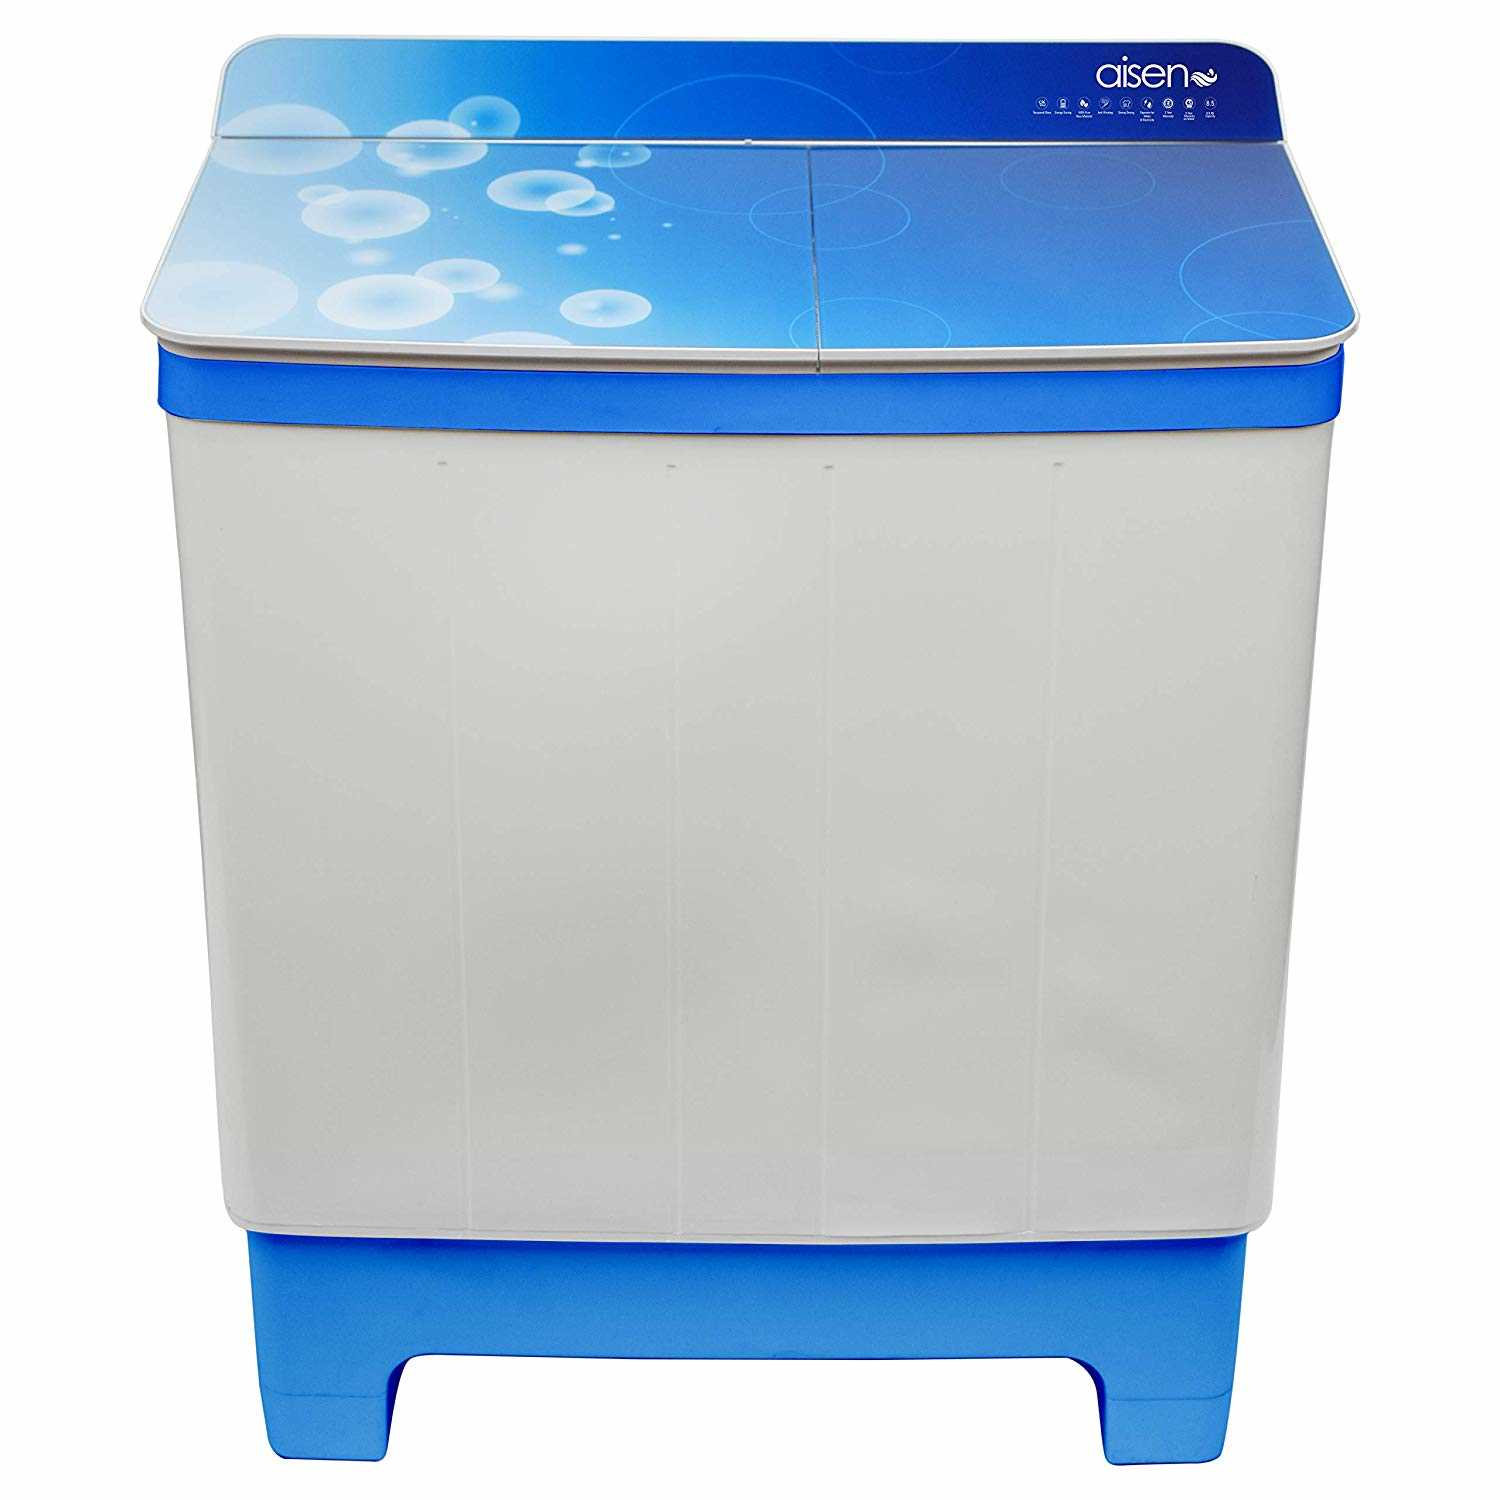 Aisen A85SWT800 8.5 Kg Semi Automatic Top Loading Washing Machine